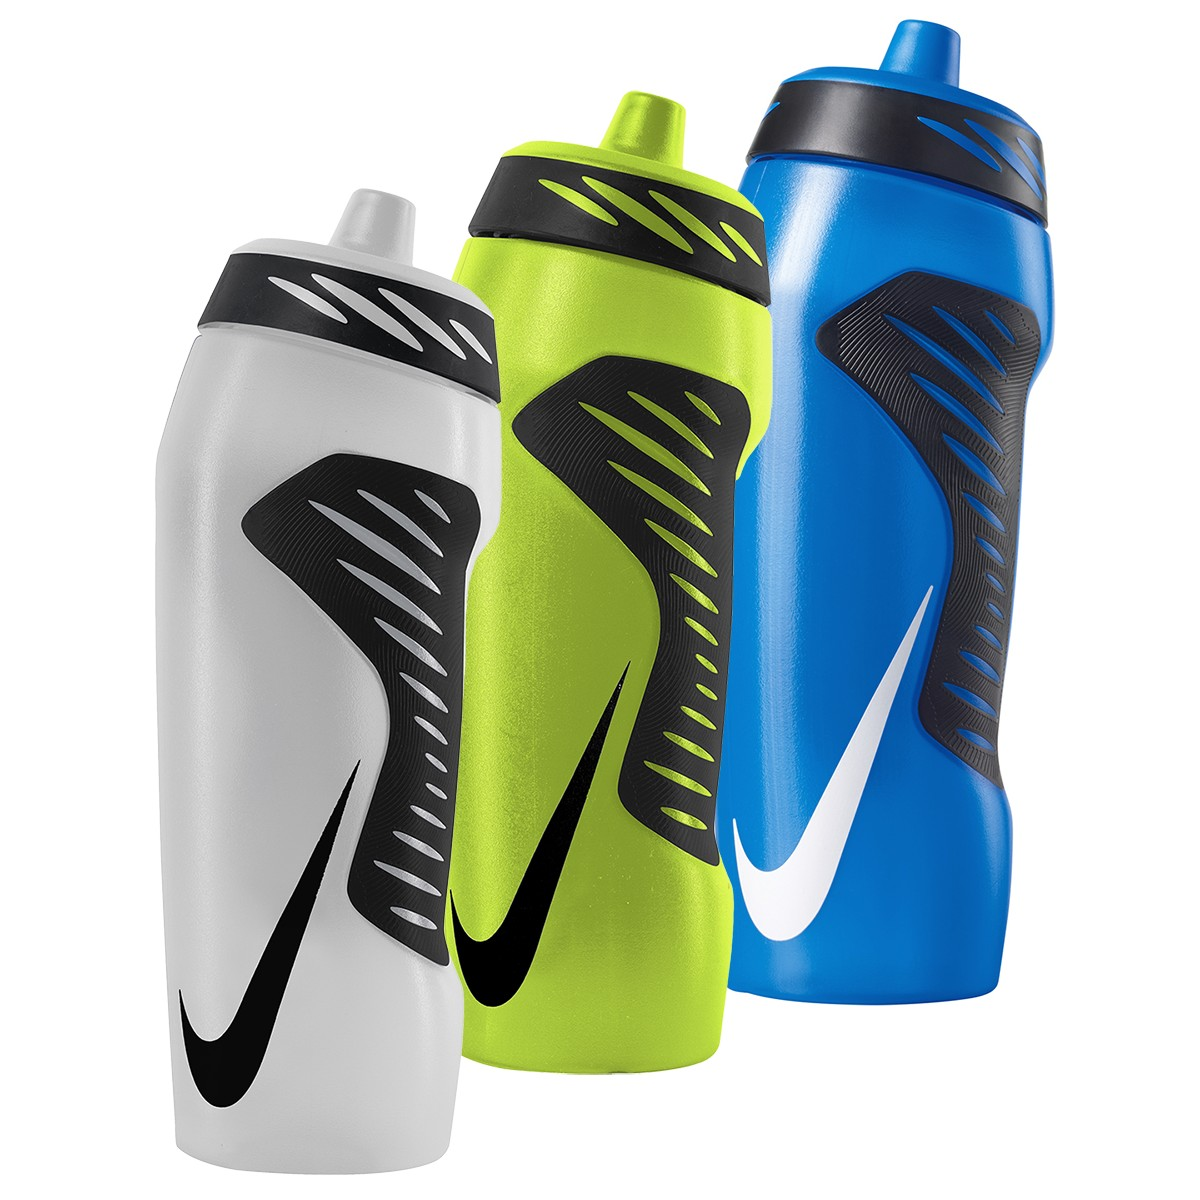 GOURDE NIKE HYPERFUEL 24 OZ (709ML)